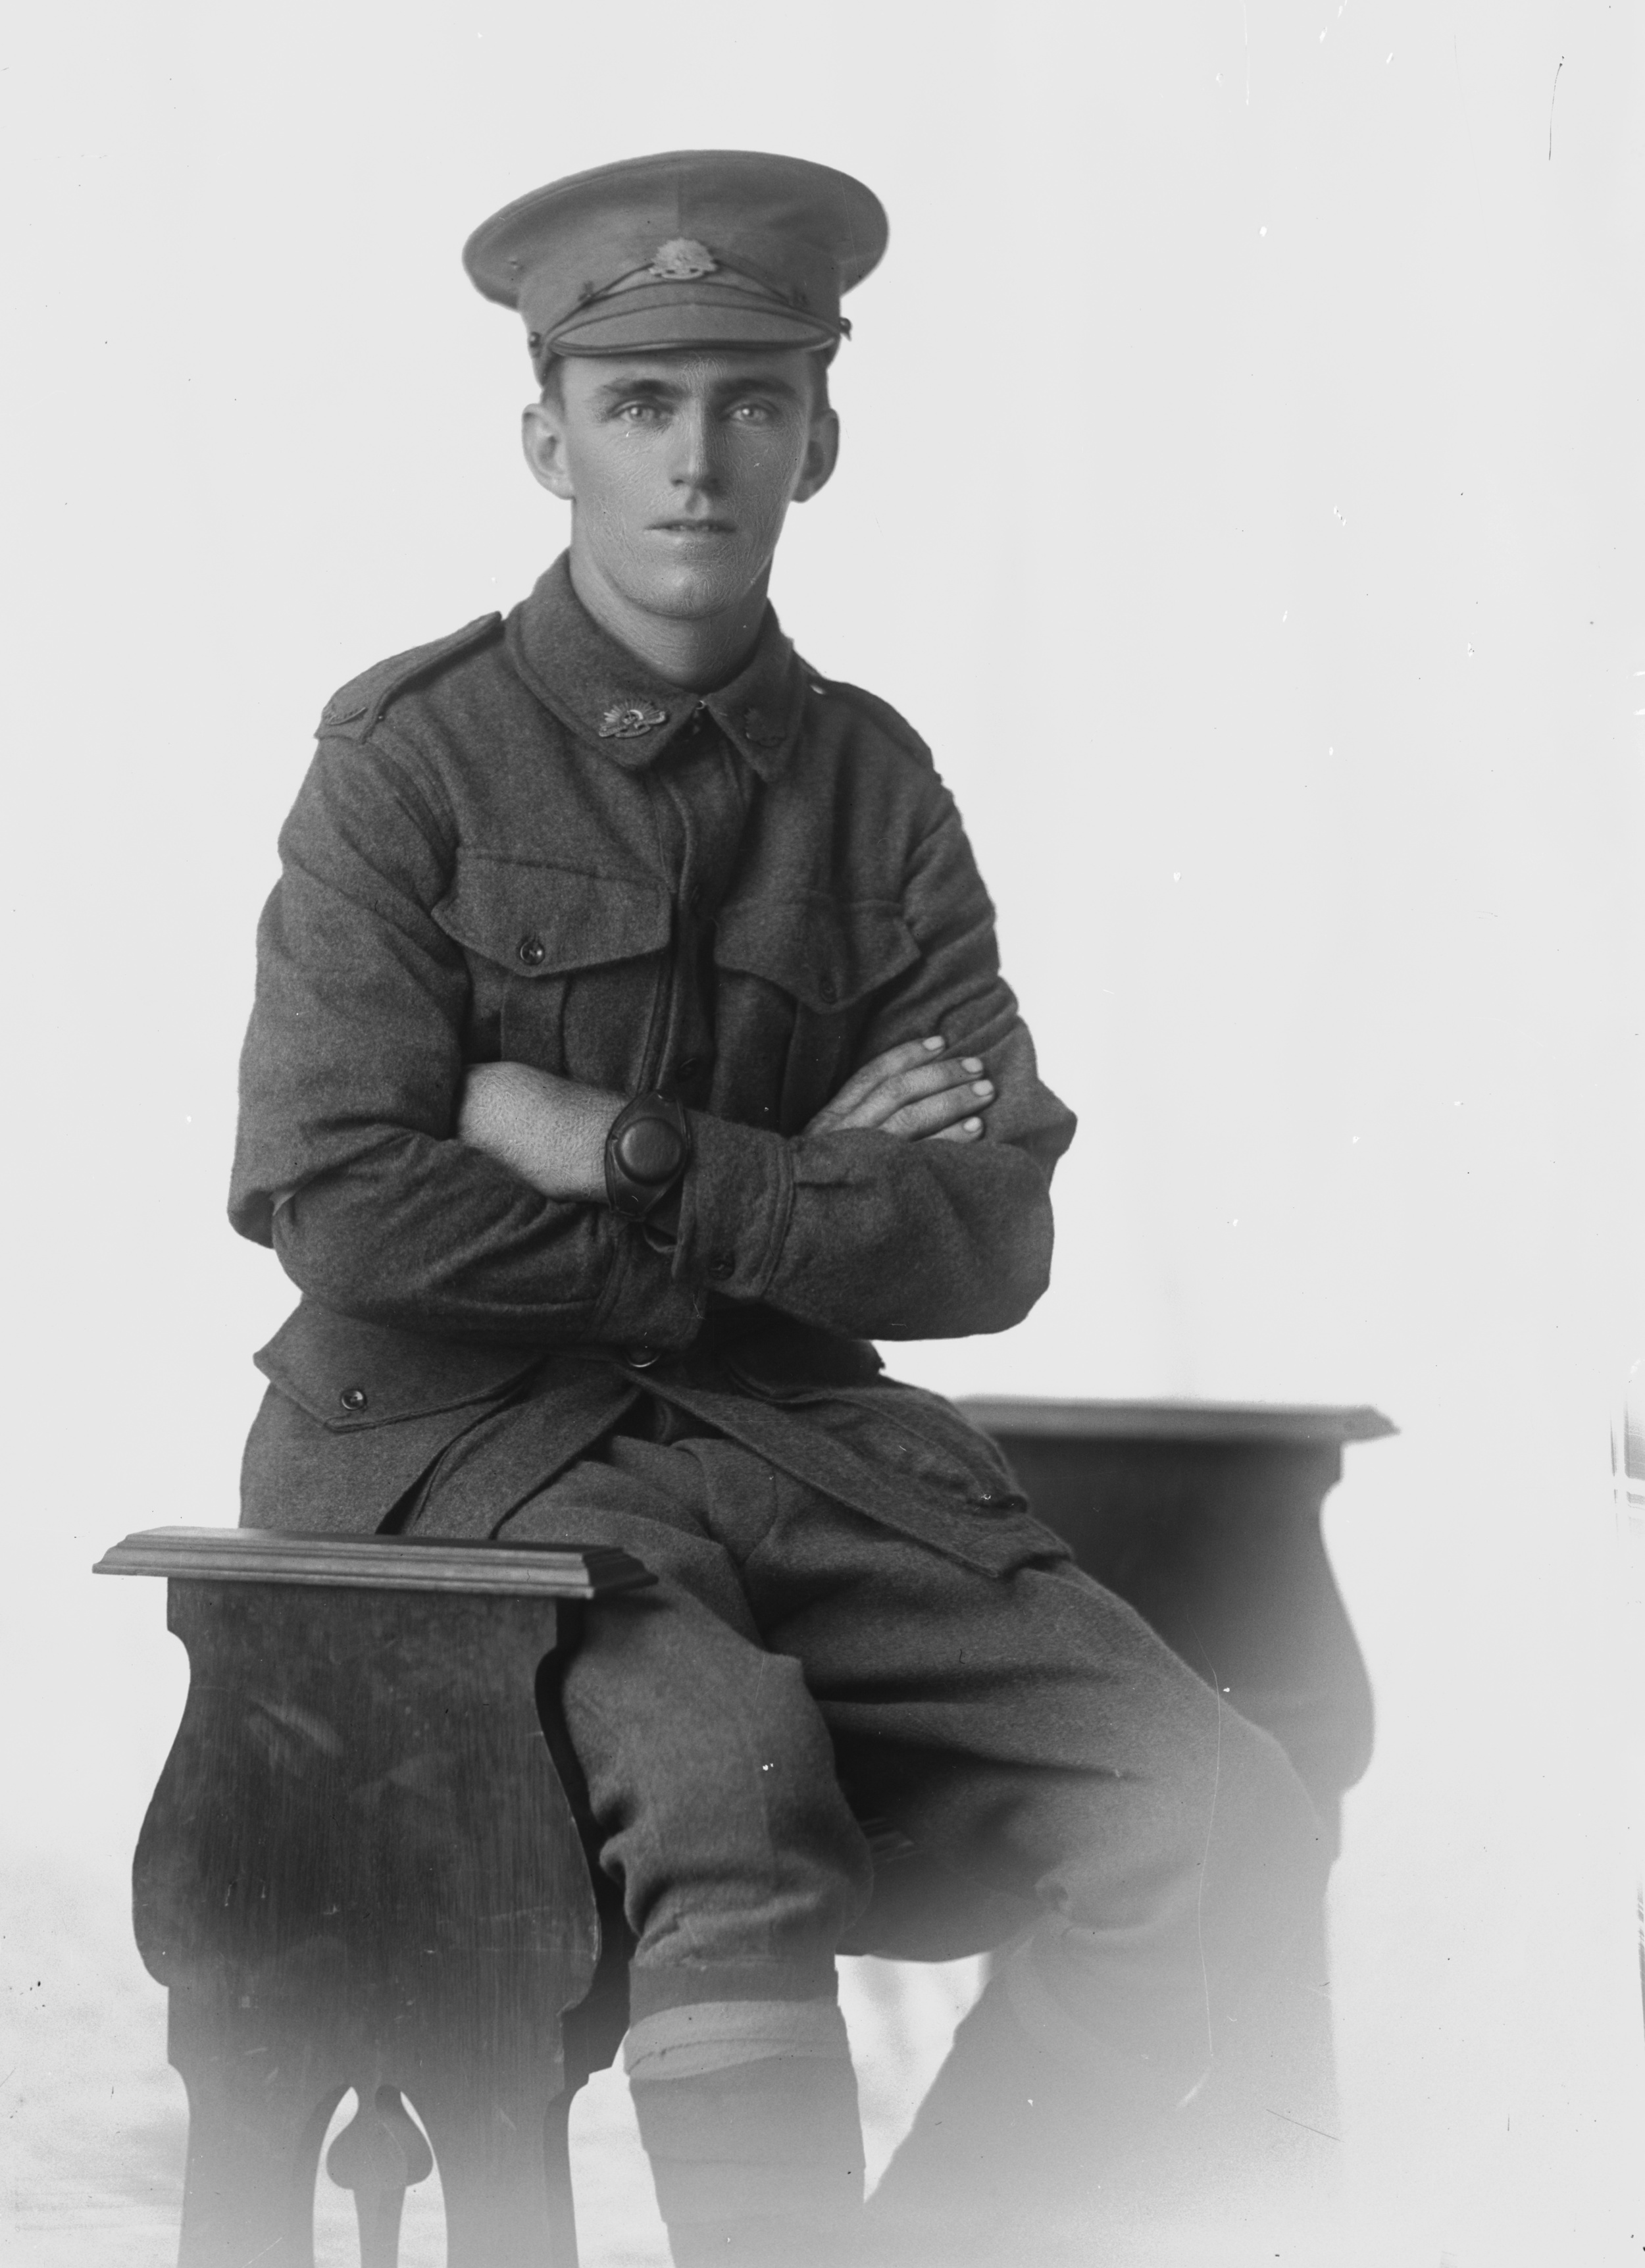 Photographed at the Dease Studio, 117 Barrack Street Perth WA Image courtesy of the State Library of Western Australia: 108407PD